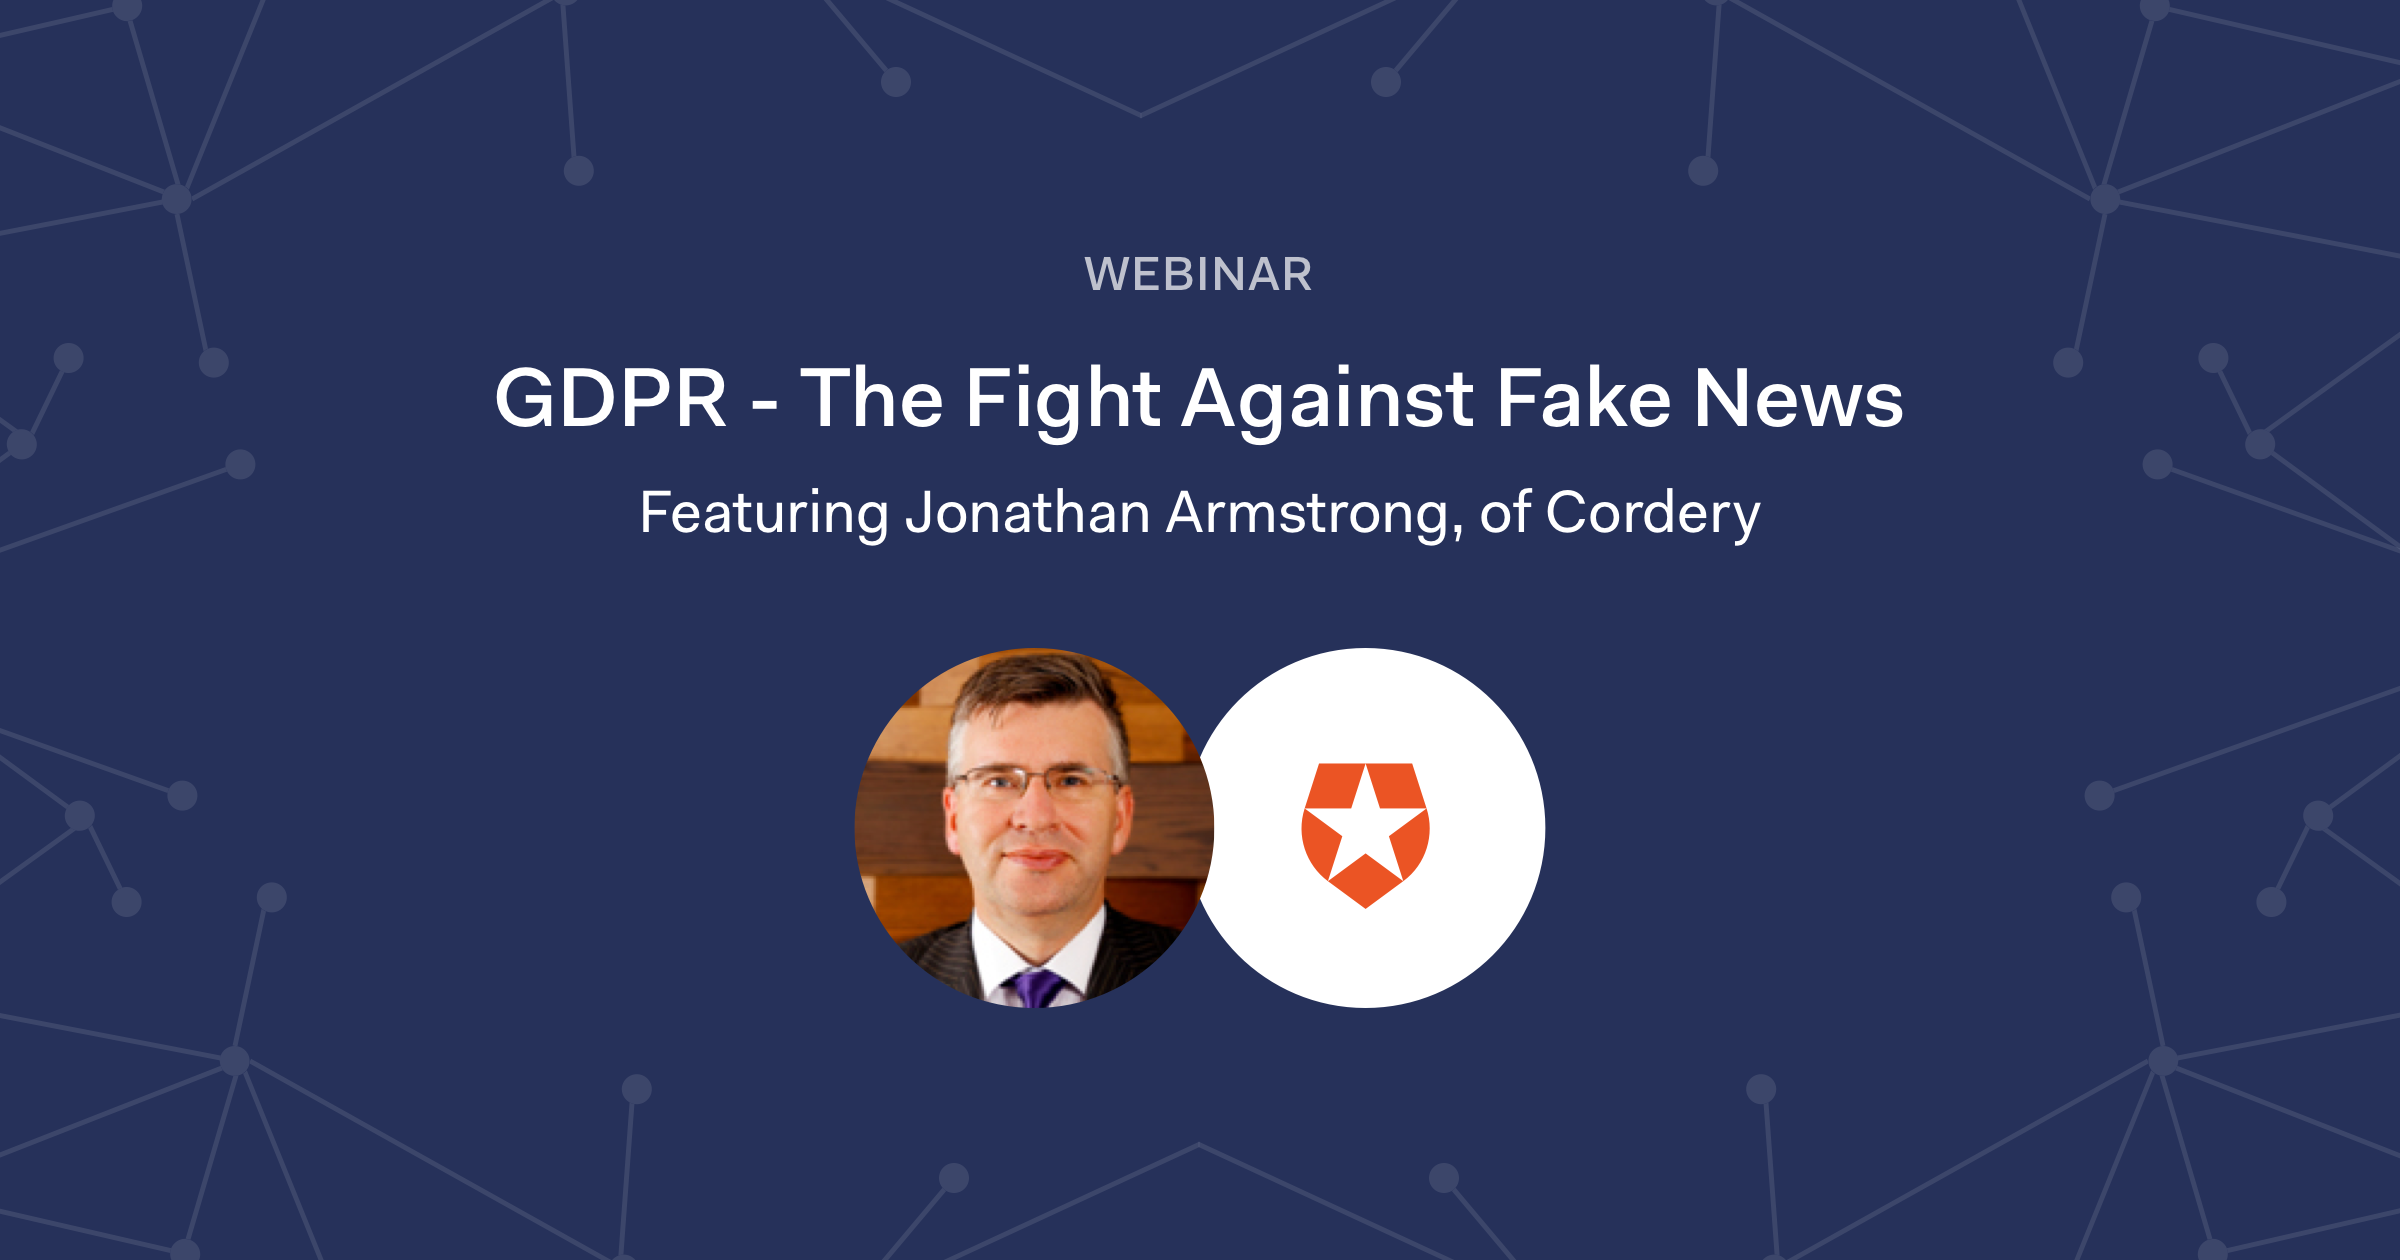 GDPR - The Fight Against Fake News webinar, featuring Jonathan Armstrong of Cordery